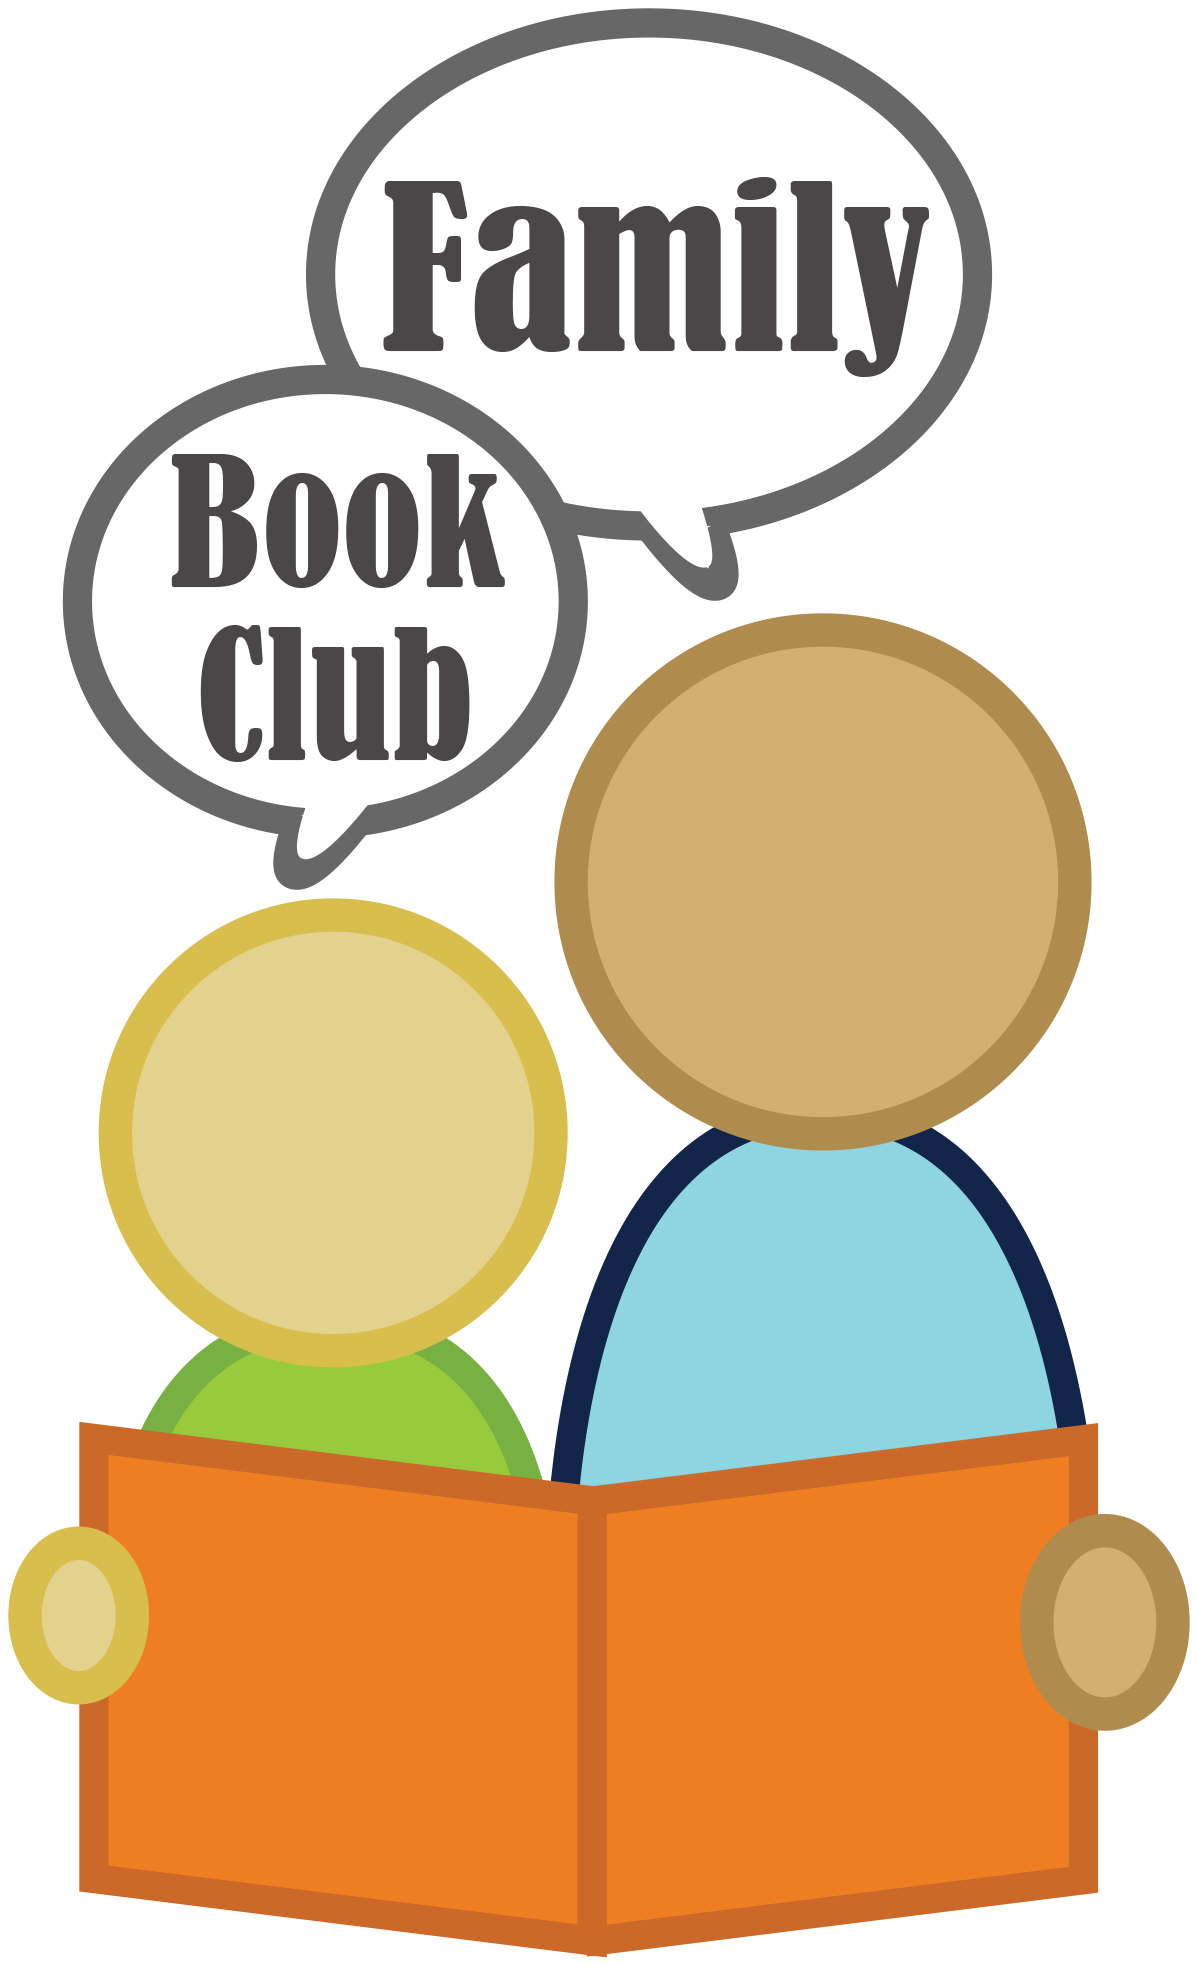 Library: Family Book Club (registration required)